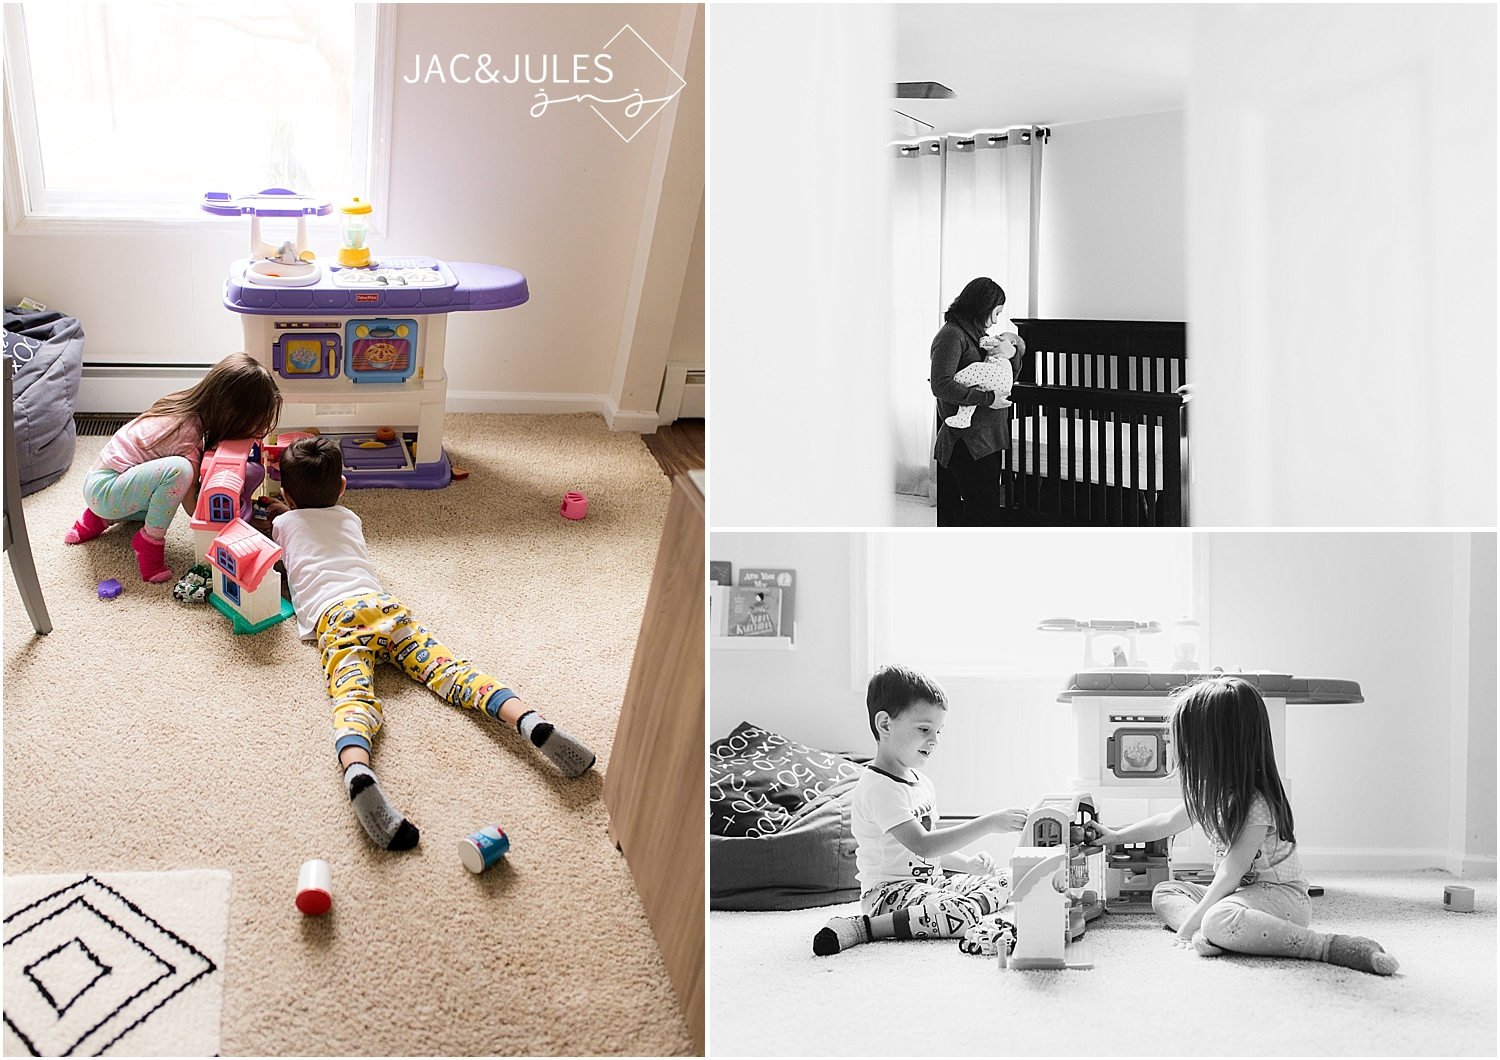 jacnjules documents a family in their home in NJ